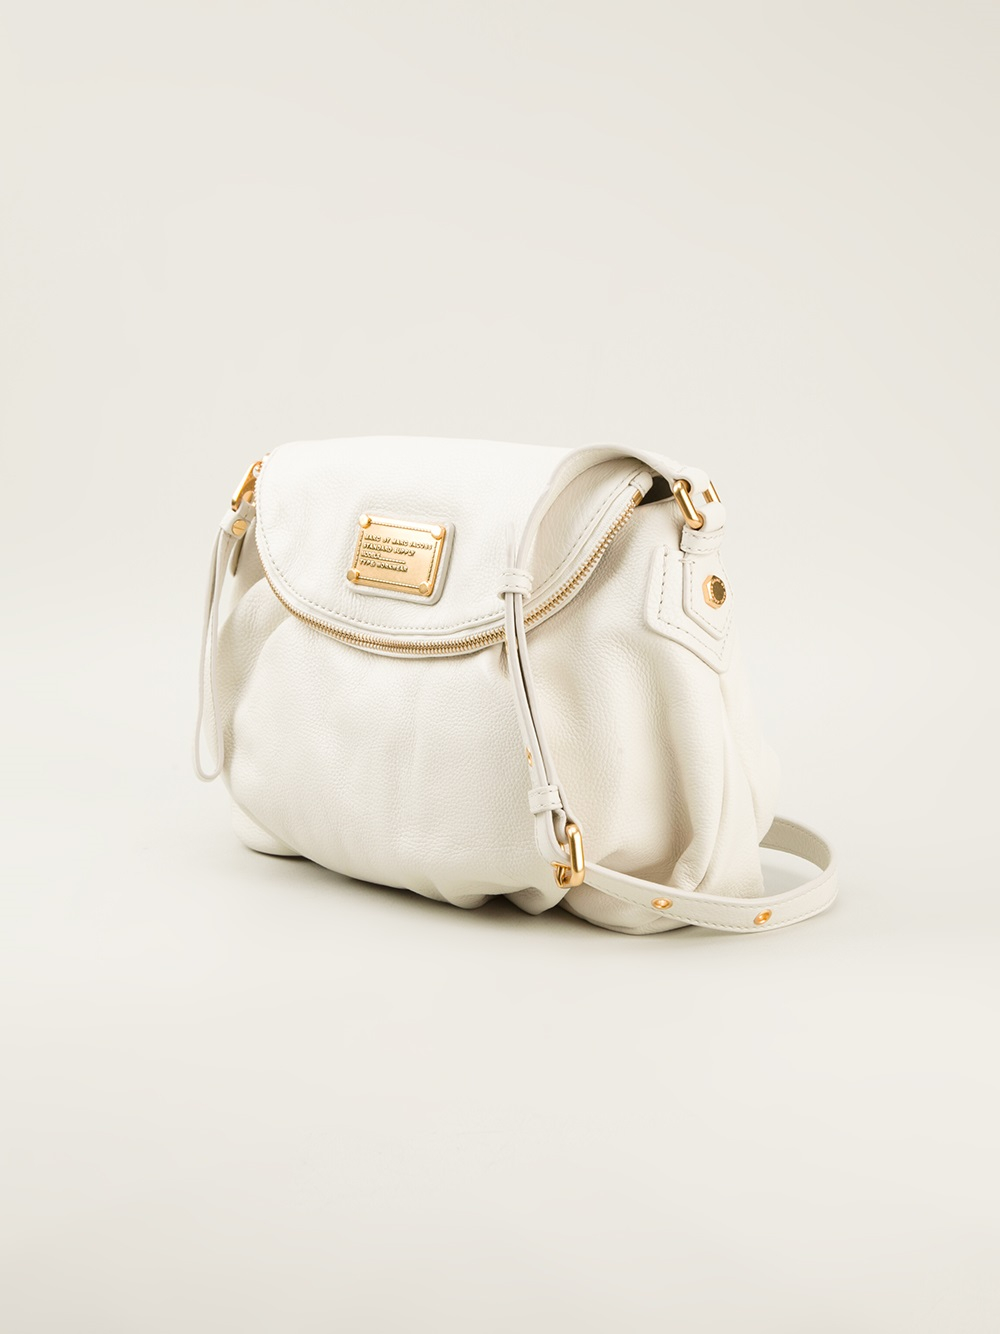 4b64f59a97 Gallery. Previously sold at: Farfetch · Women's Marc Jacobs Natasha